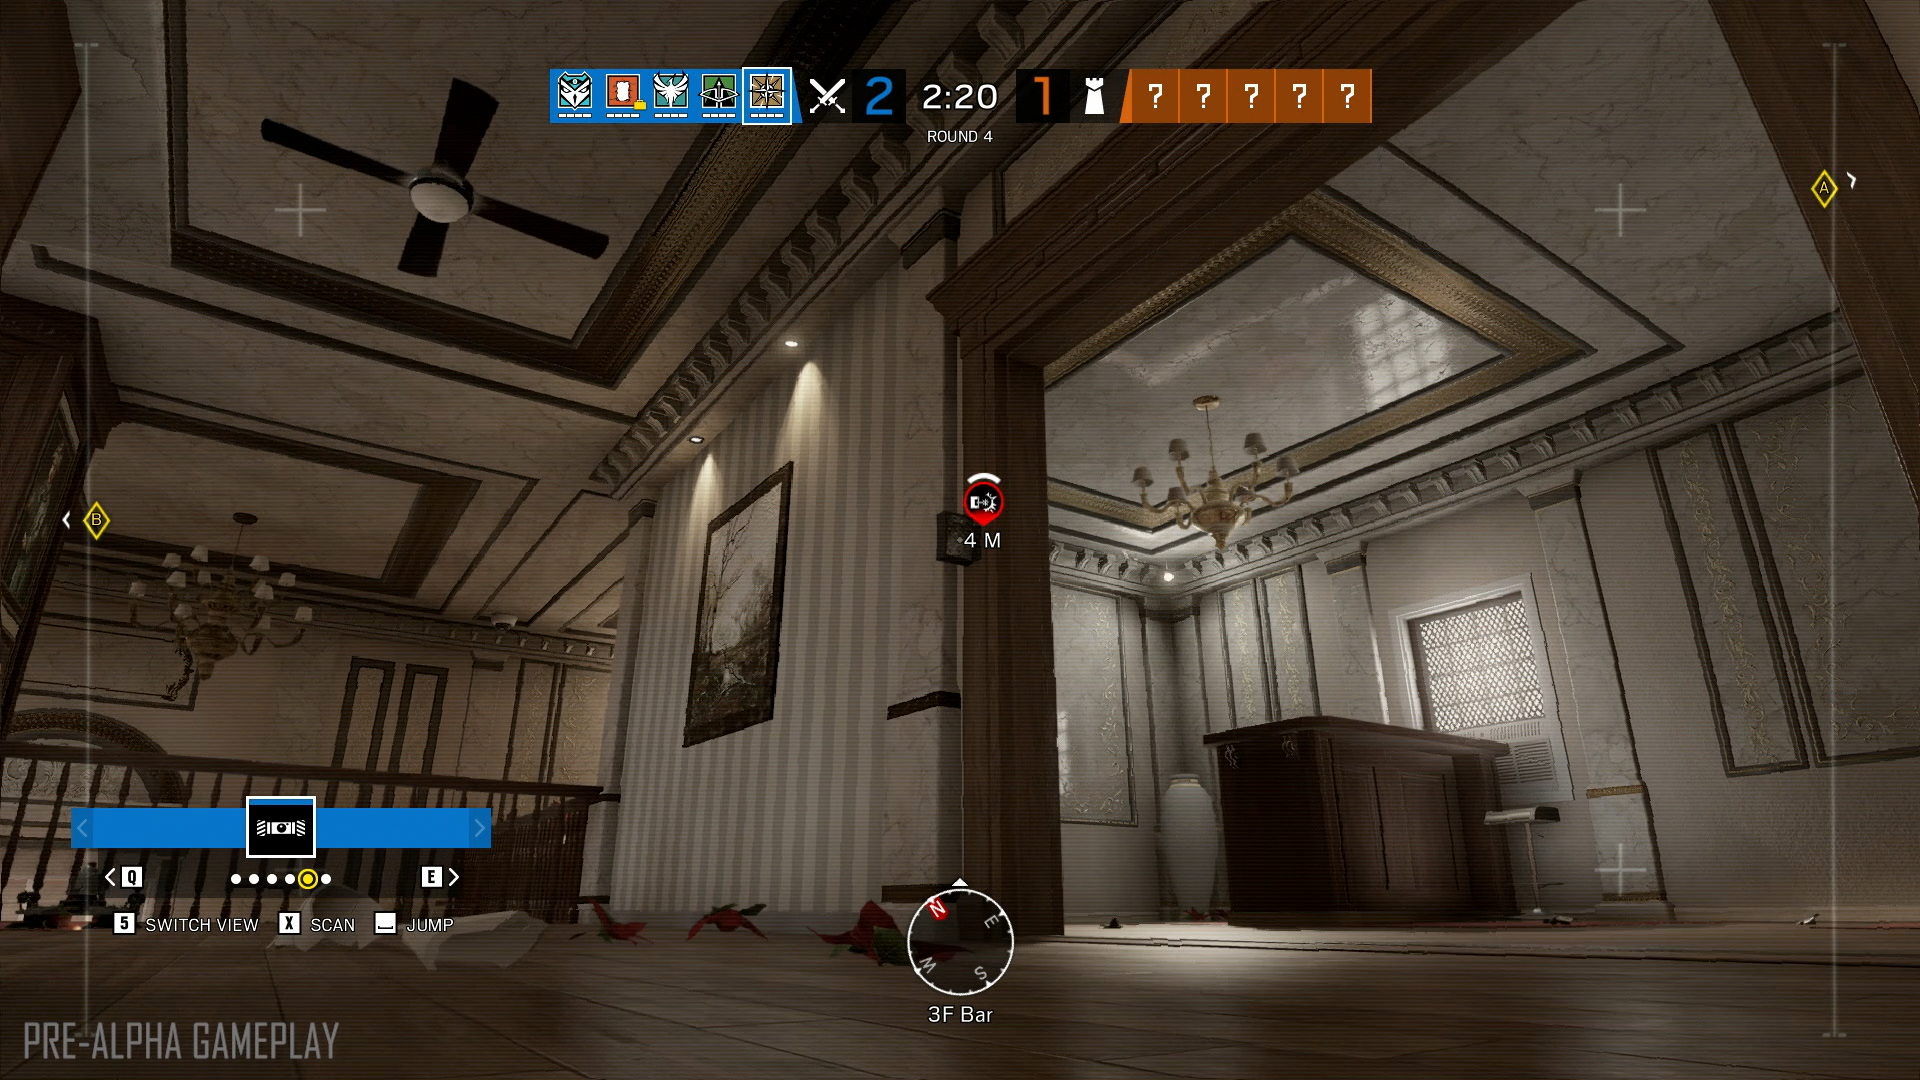 Rainbow 6 Updated Ping System